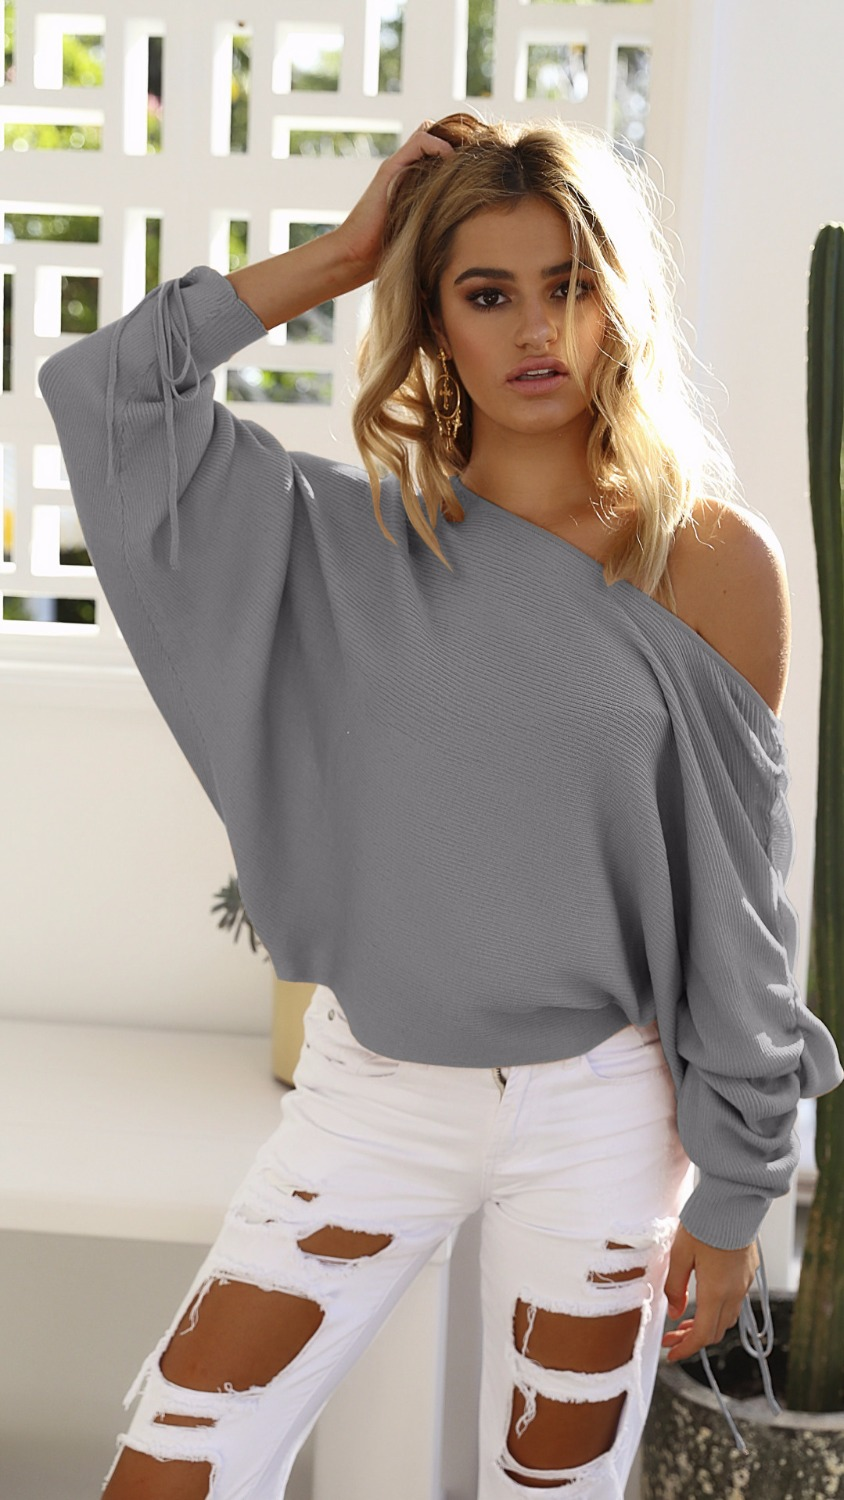 OYDDUP 2017 Autumn Women Off Shoulder Sweater Lace Up Women Sweaters and Pullovers  High Street Jumper Knitted Tops S XL 4 Colors-in Pullovers from Women s ... 204987956